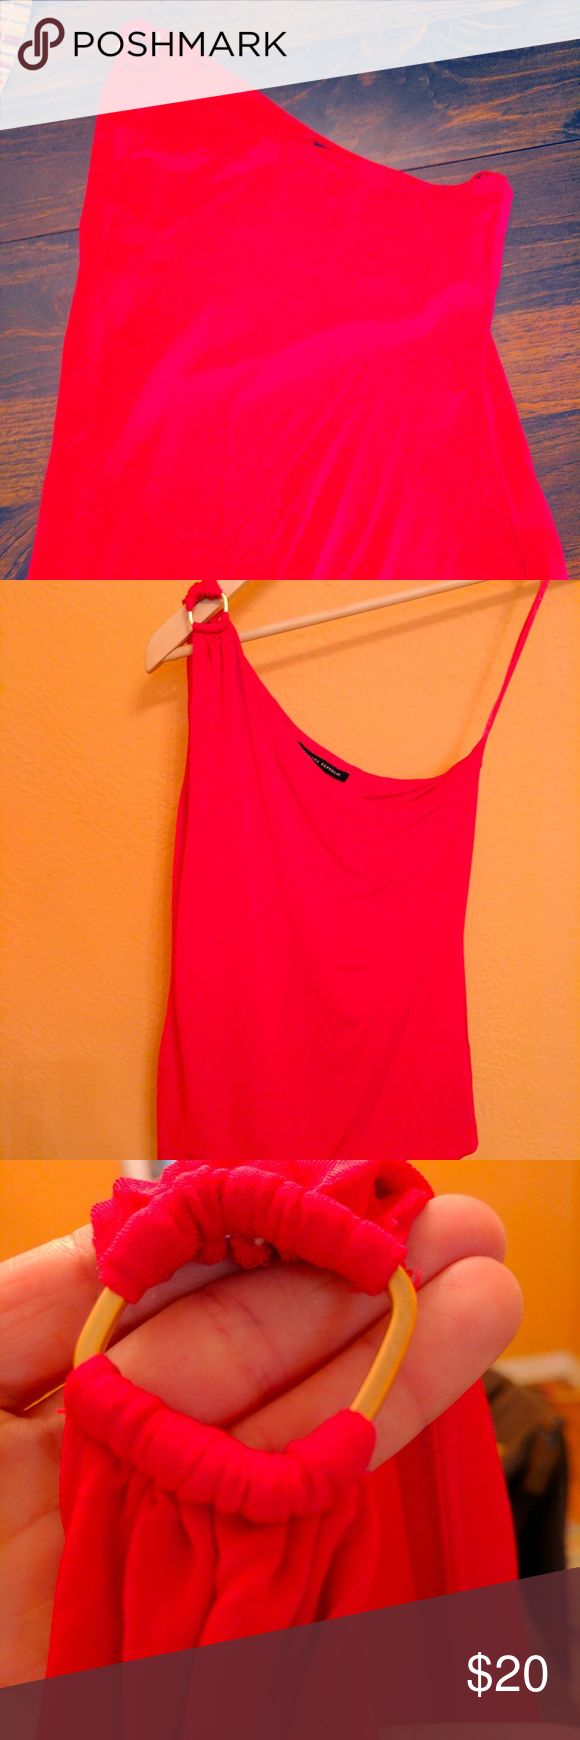 Banana Republic One Shoulder Red Top One shoulder tank top with a nice gold square connector on shoulder (see photo). Great for a night out! The top is made with stretch material and has a small lining around the breast. Banana Republic Tops